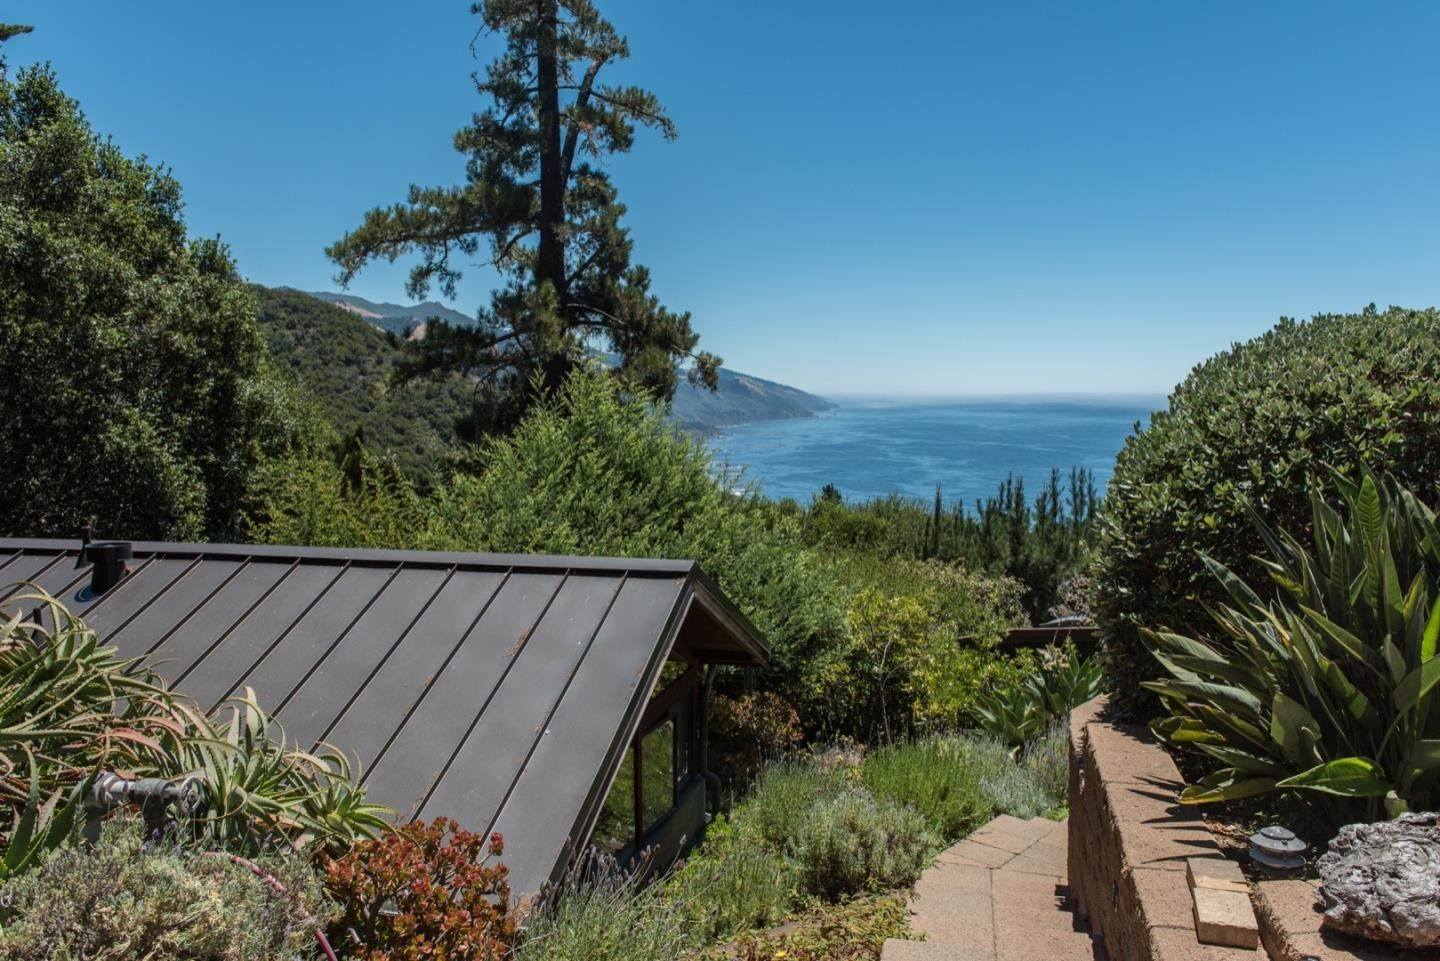 Résidentiel pour l Vente à 51400 Partington Ridge Road Big Sur, Californie 93920 États-Unis